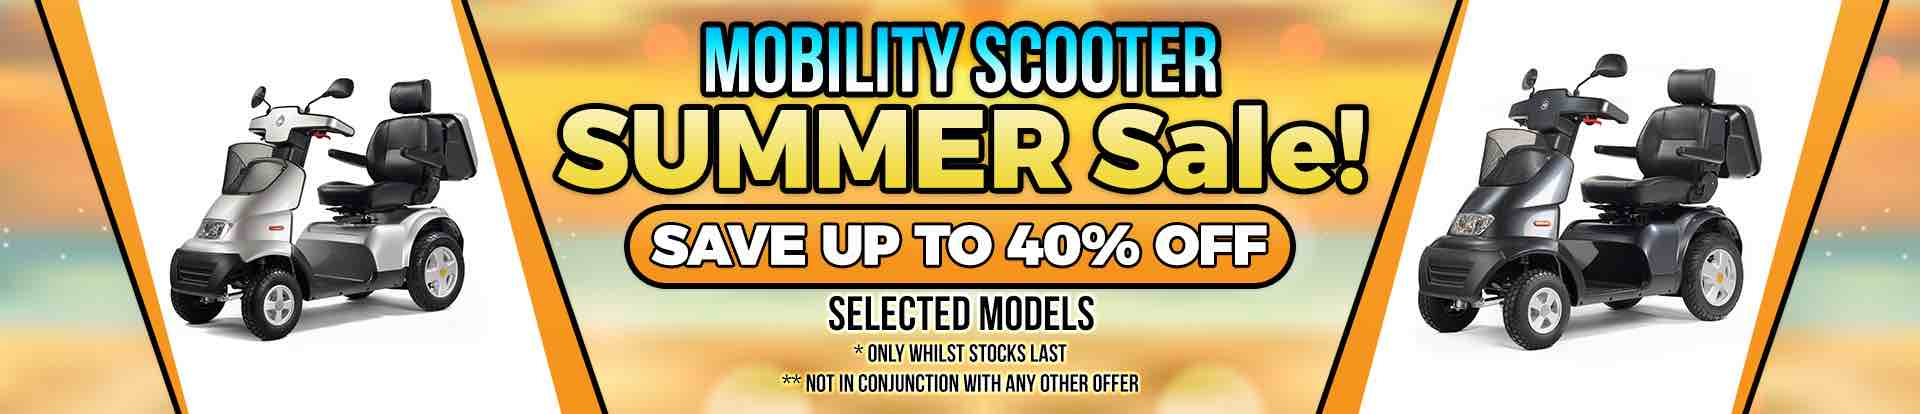 Lifestyle Mobility Scooter Summer